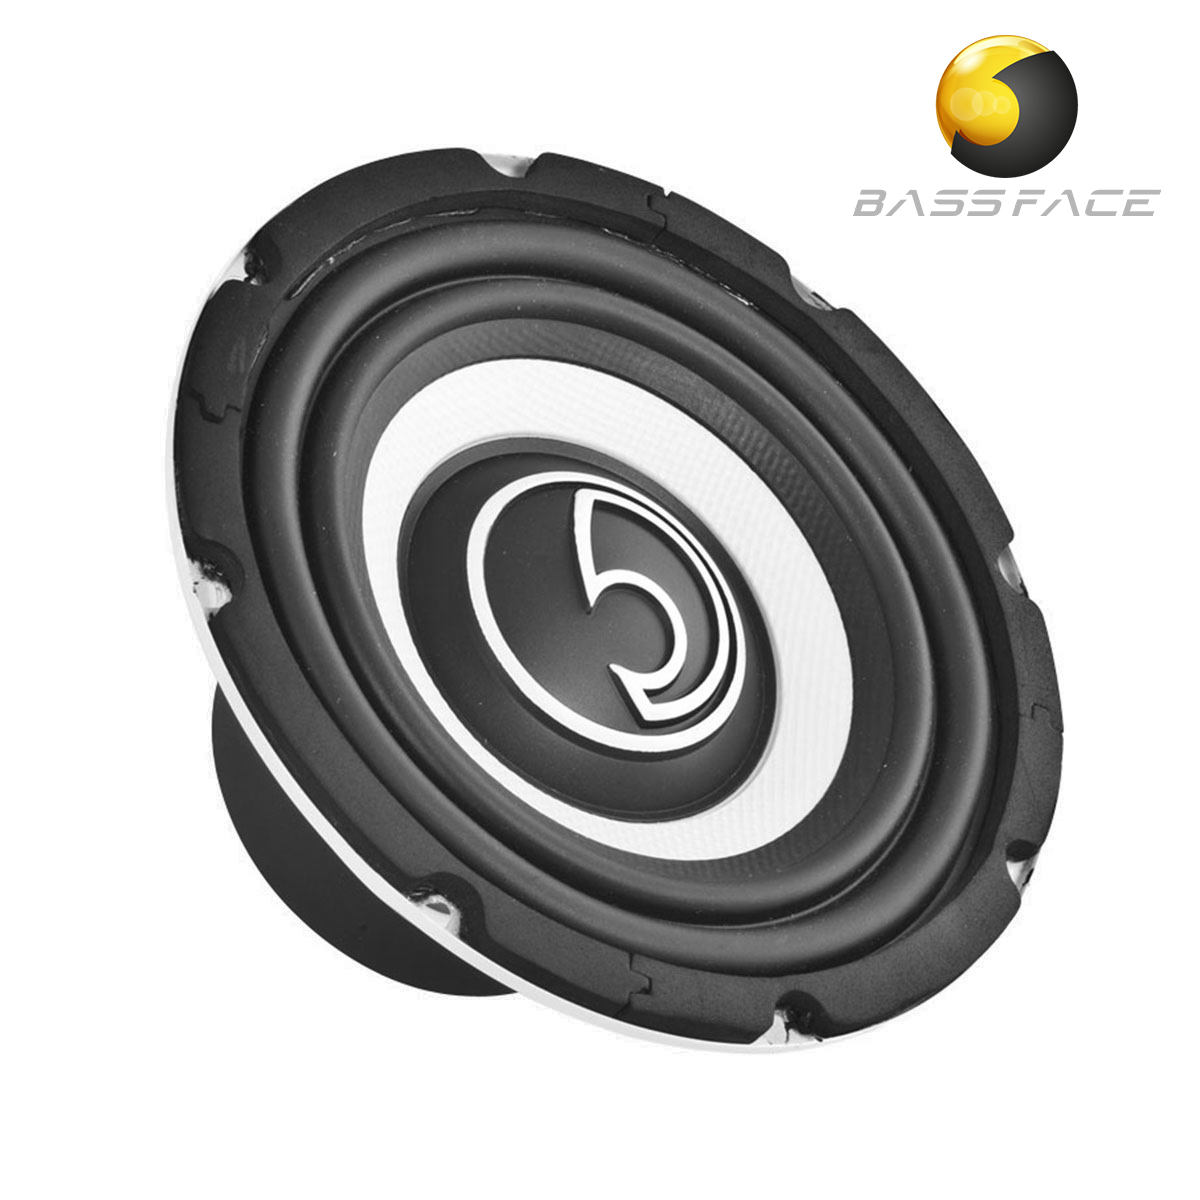 Bassface Car Audio The Specialists Stereo Kit 800w Sub 500w 2 Channel Amplifier Capacitor Wiring Spl81 8 Inch 20cm 4ohm Svc Subwoofer 400w Rms